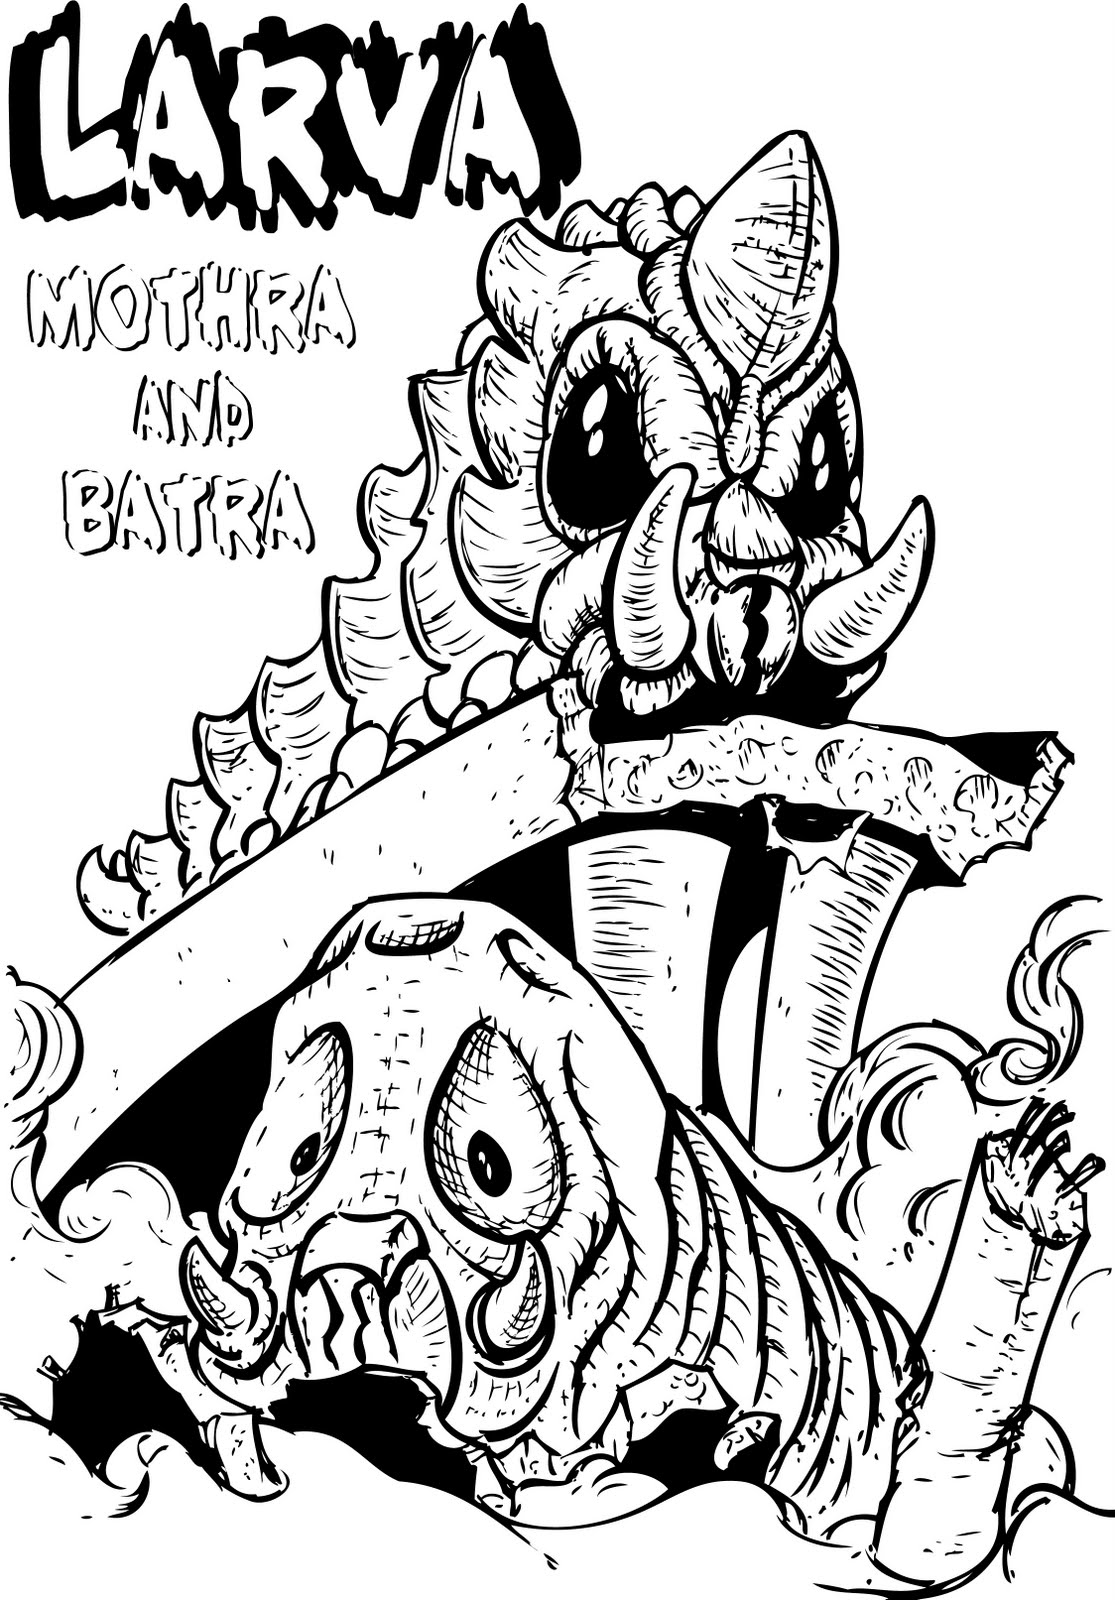 Mothra Larva Free Coloring Pages